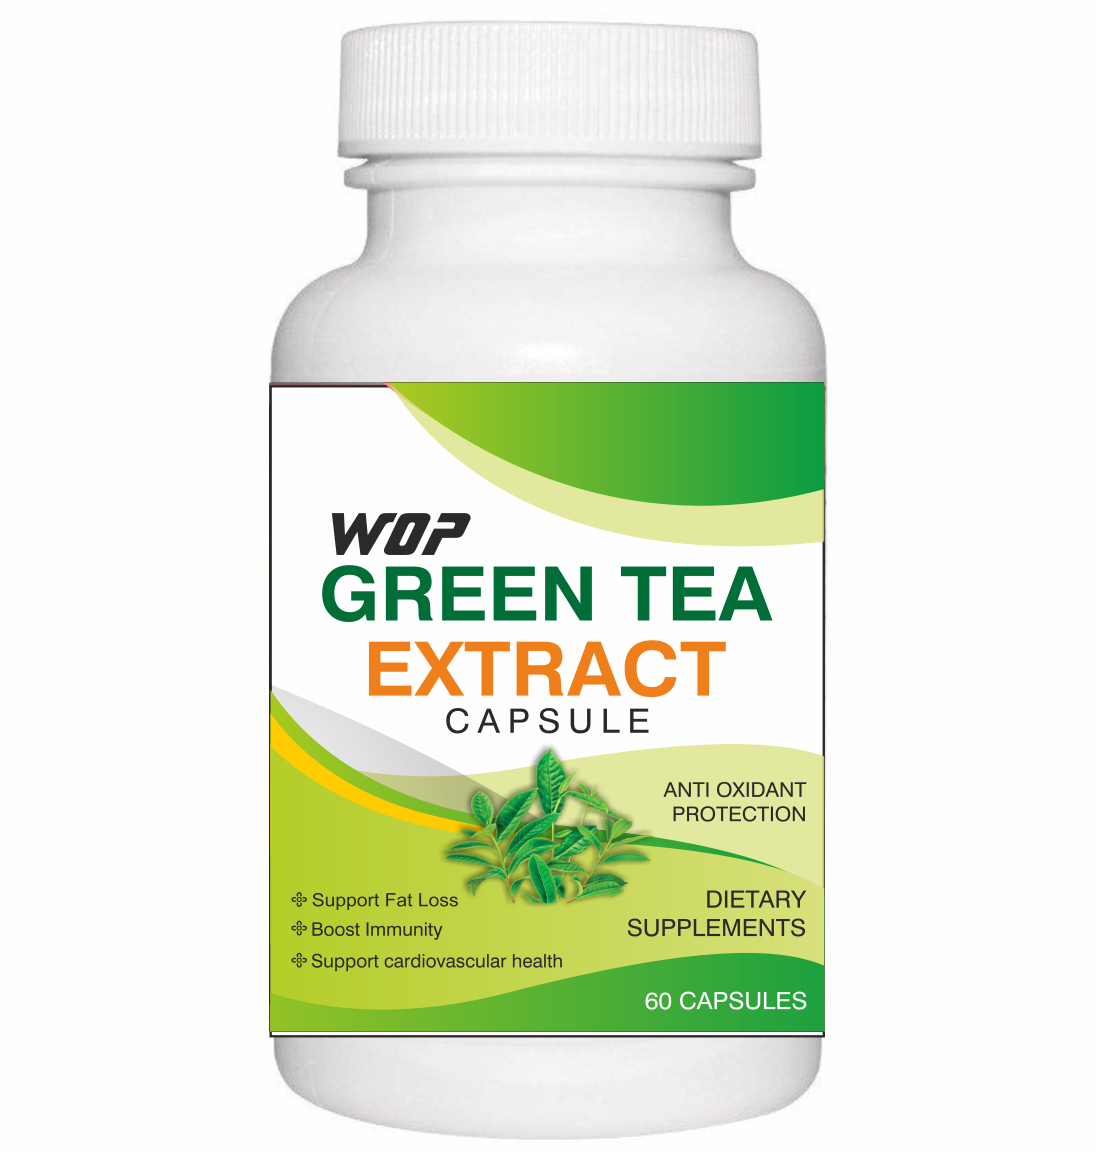 size_074933_Green_Tea_Extract_Capsule_Jar.jpg